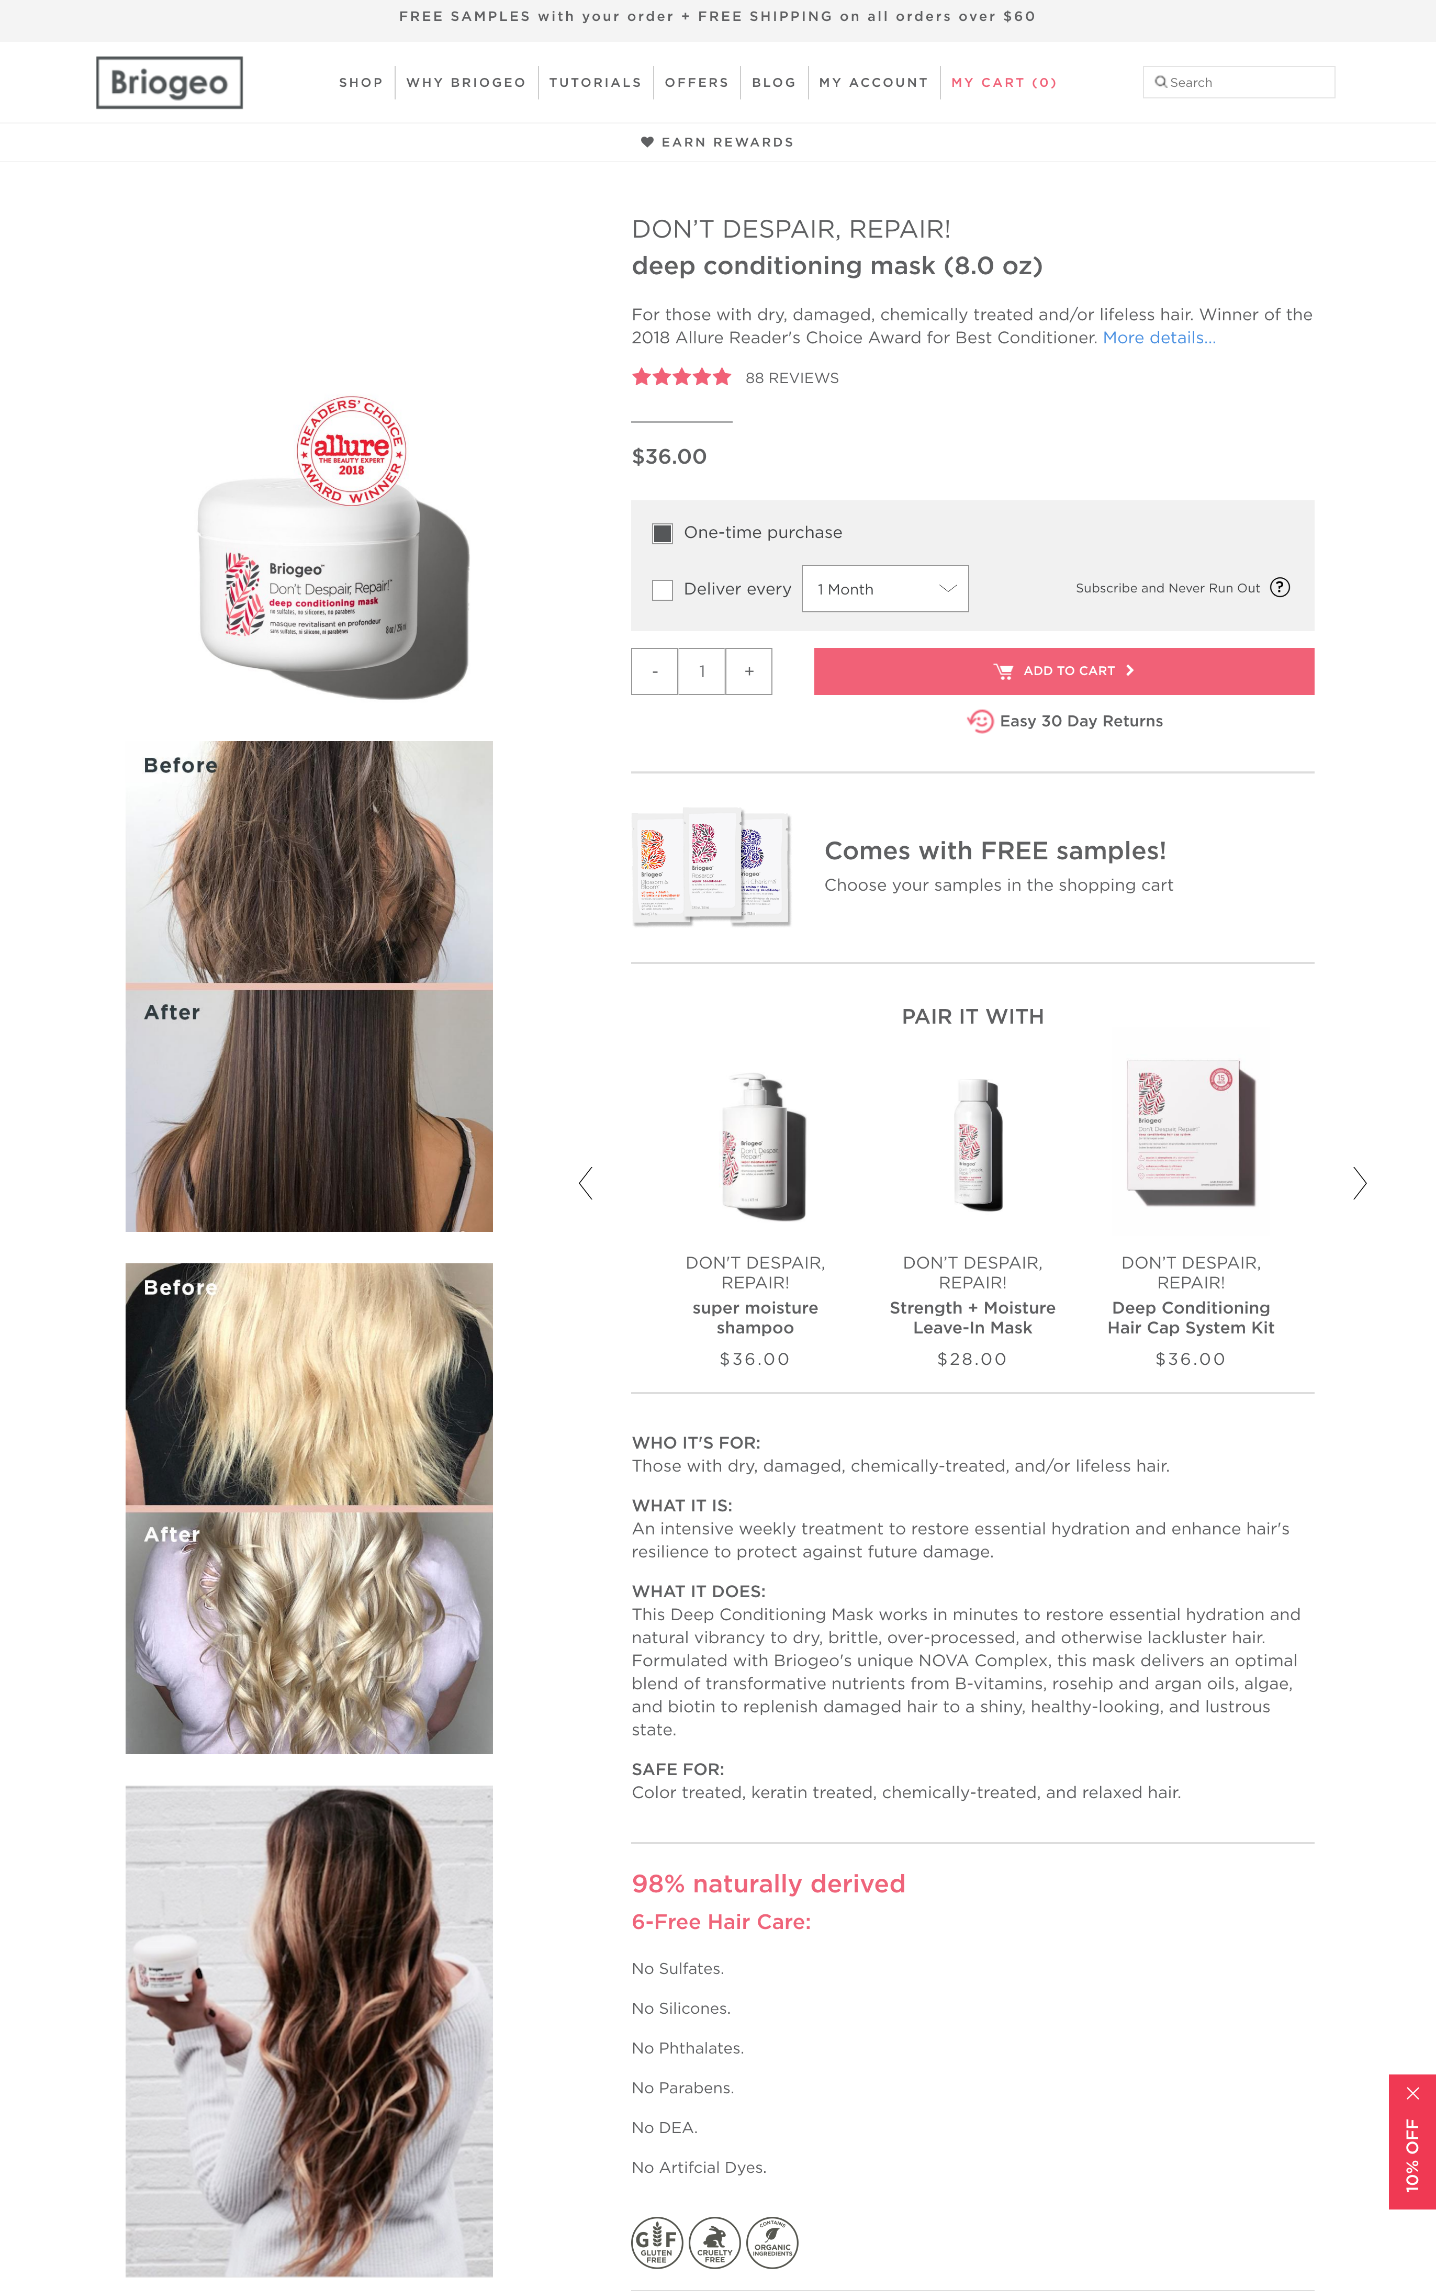 Briogeo product page created using Shogun